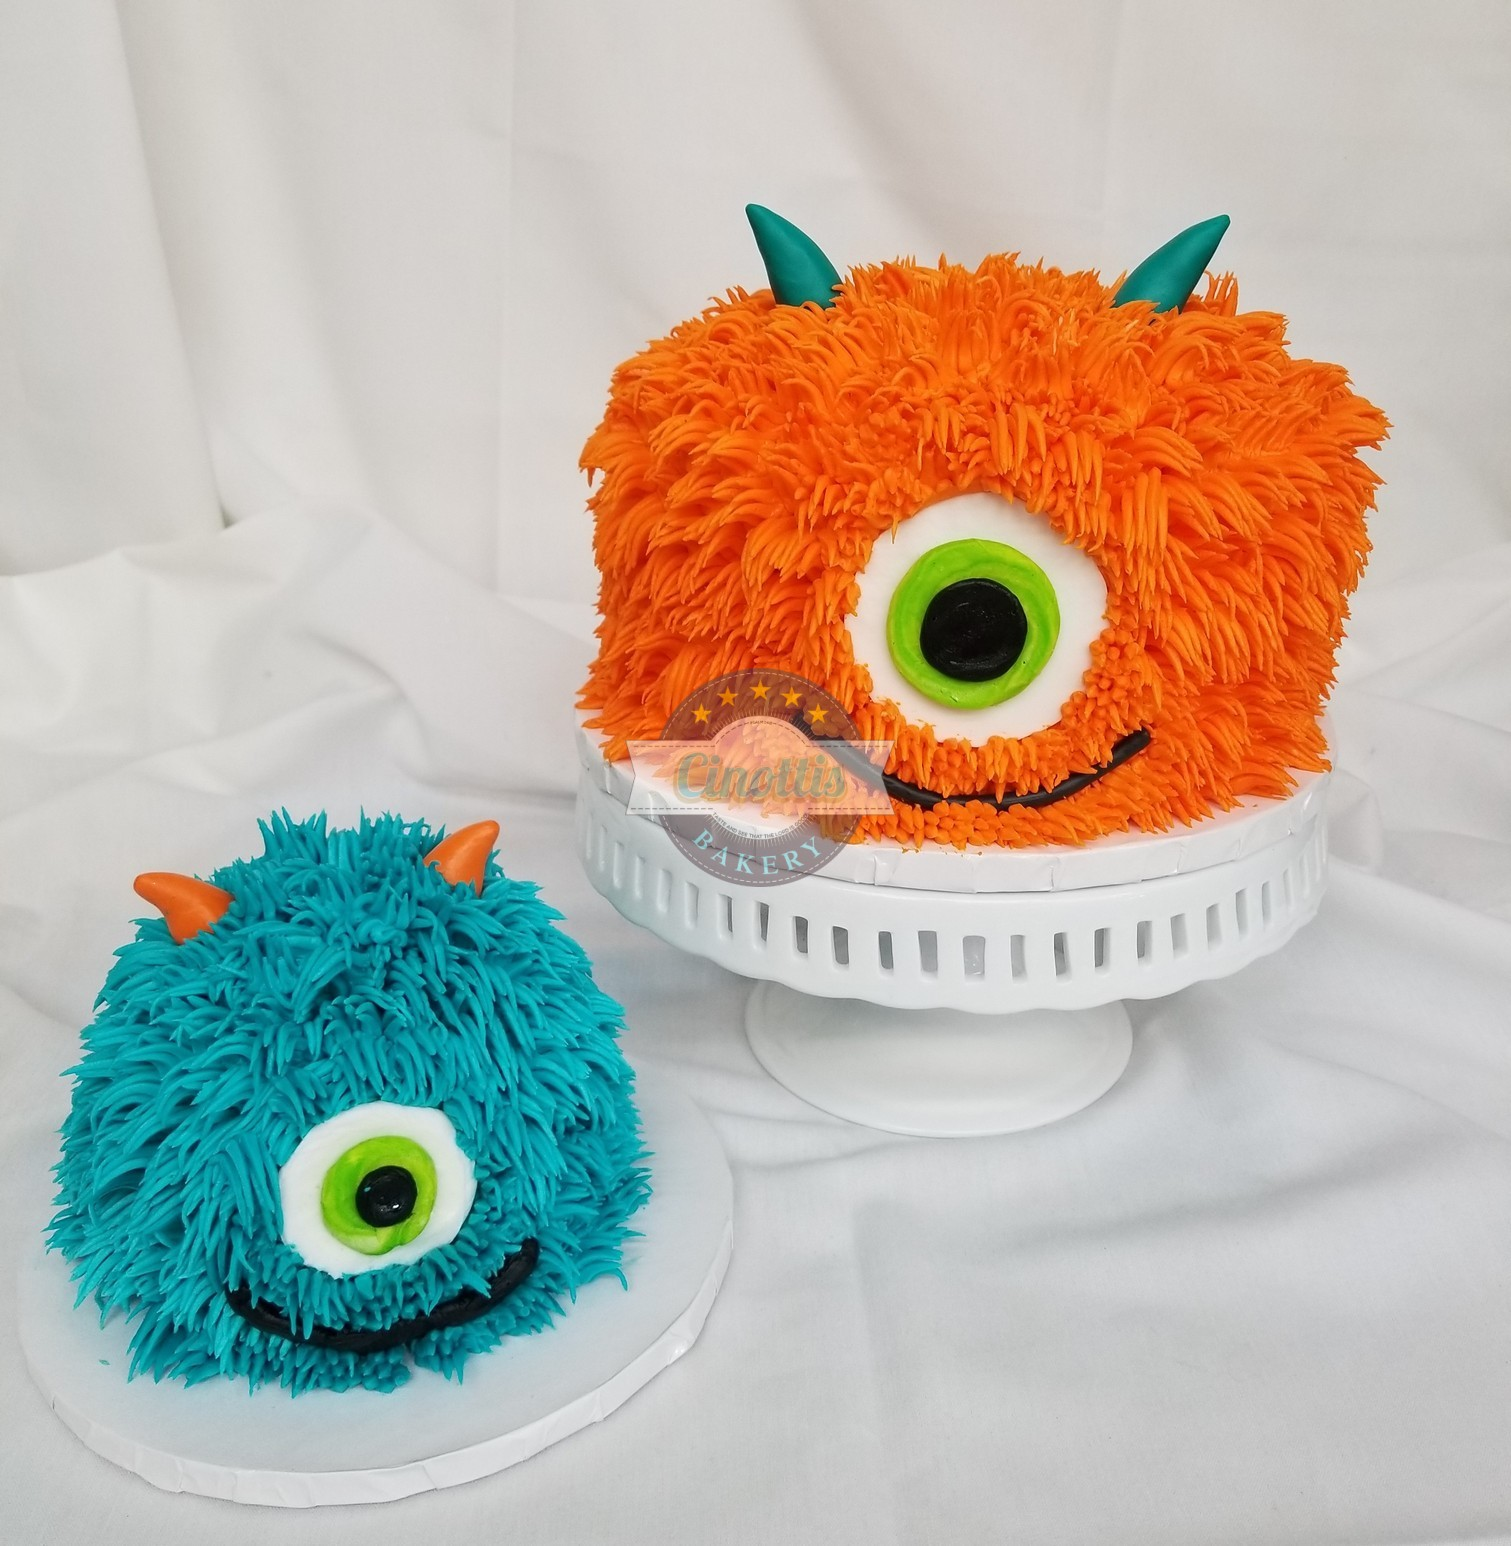 Happy Monster Celebration Cake from Cinottis Bakery